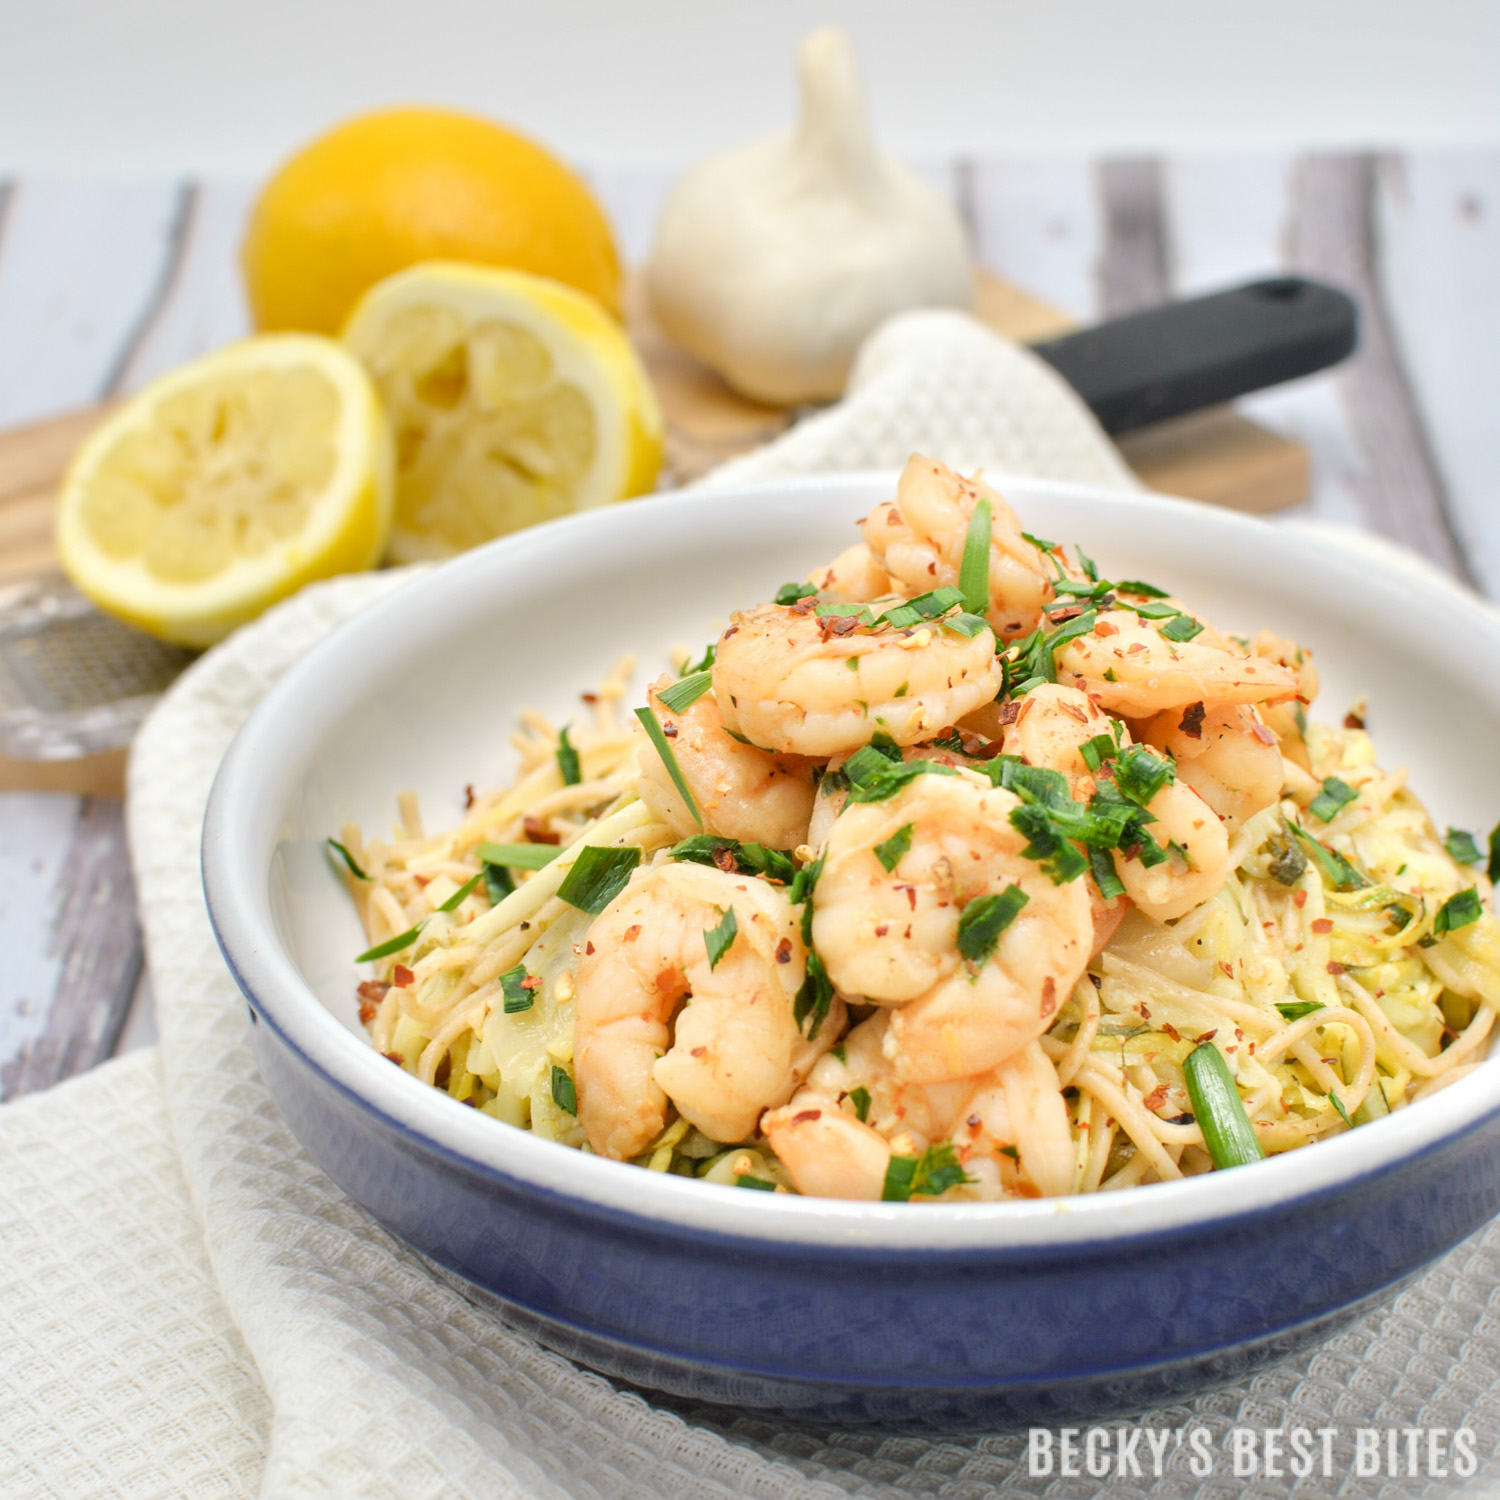 Easy Shrimp Scampi with Zoodles and Noodles is an easy and healthy weeknight dinner recipe. Introduce your family to healthier zucchini noodles by adding them to regular whole grain pasta for a fun way to add more veggies to their diets!| beckysbestbites.com